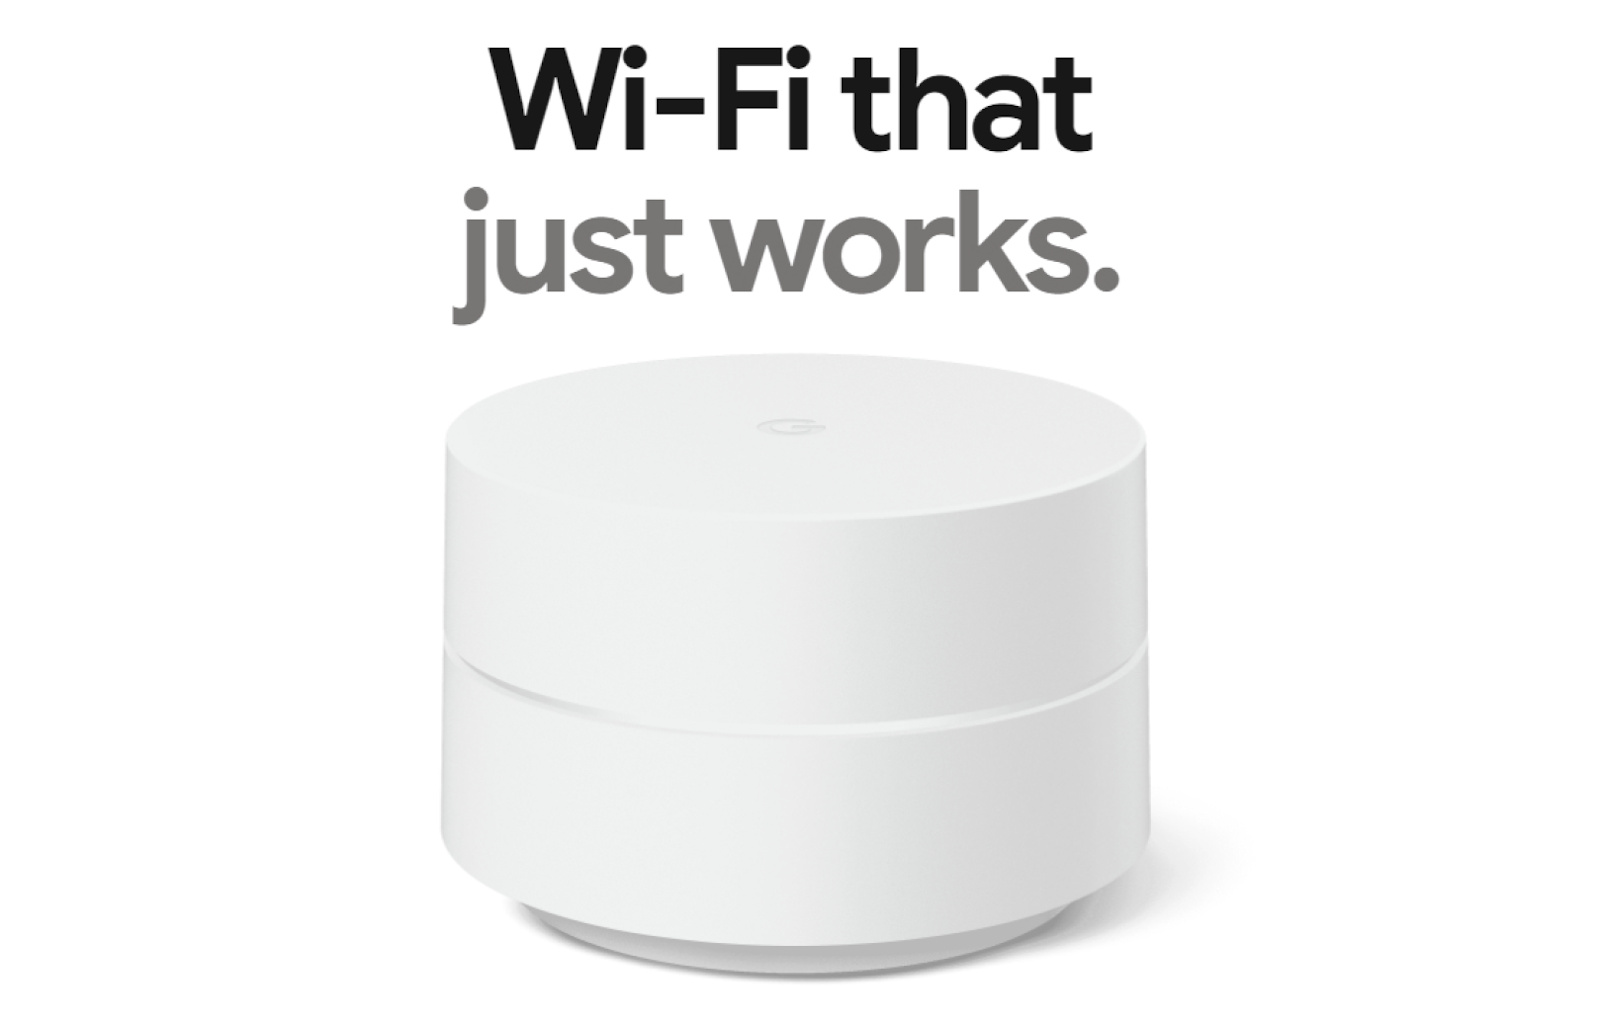 The latest Google mesh WiFi system is 20 percent off at Adorama